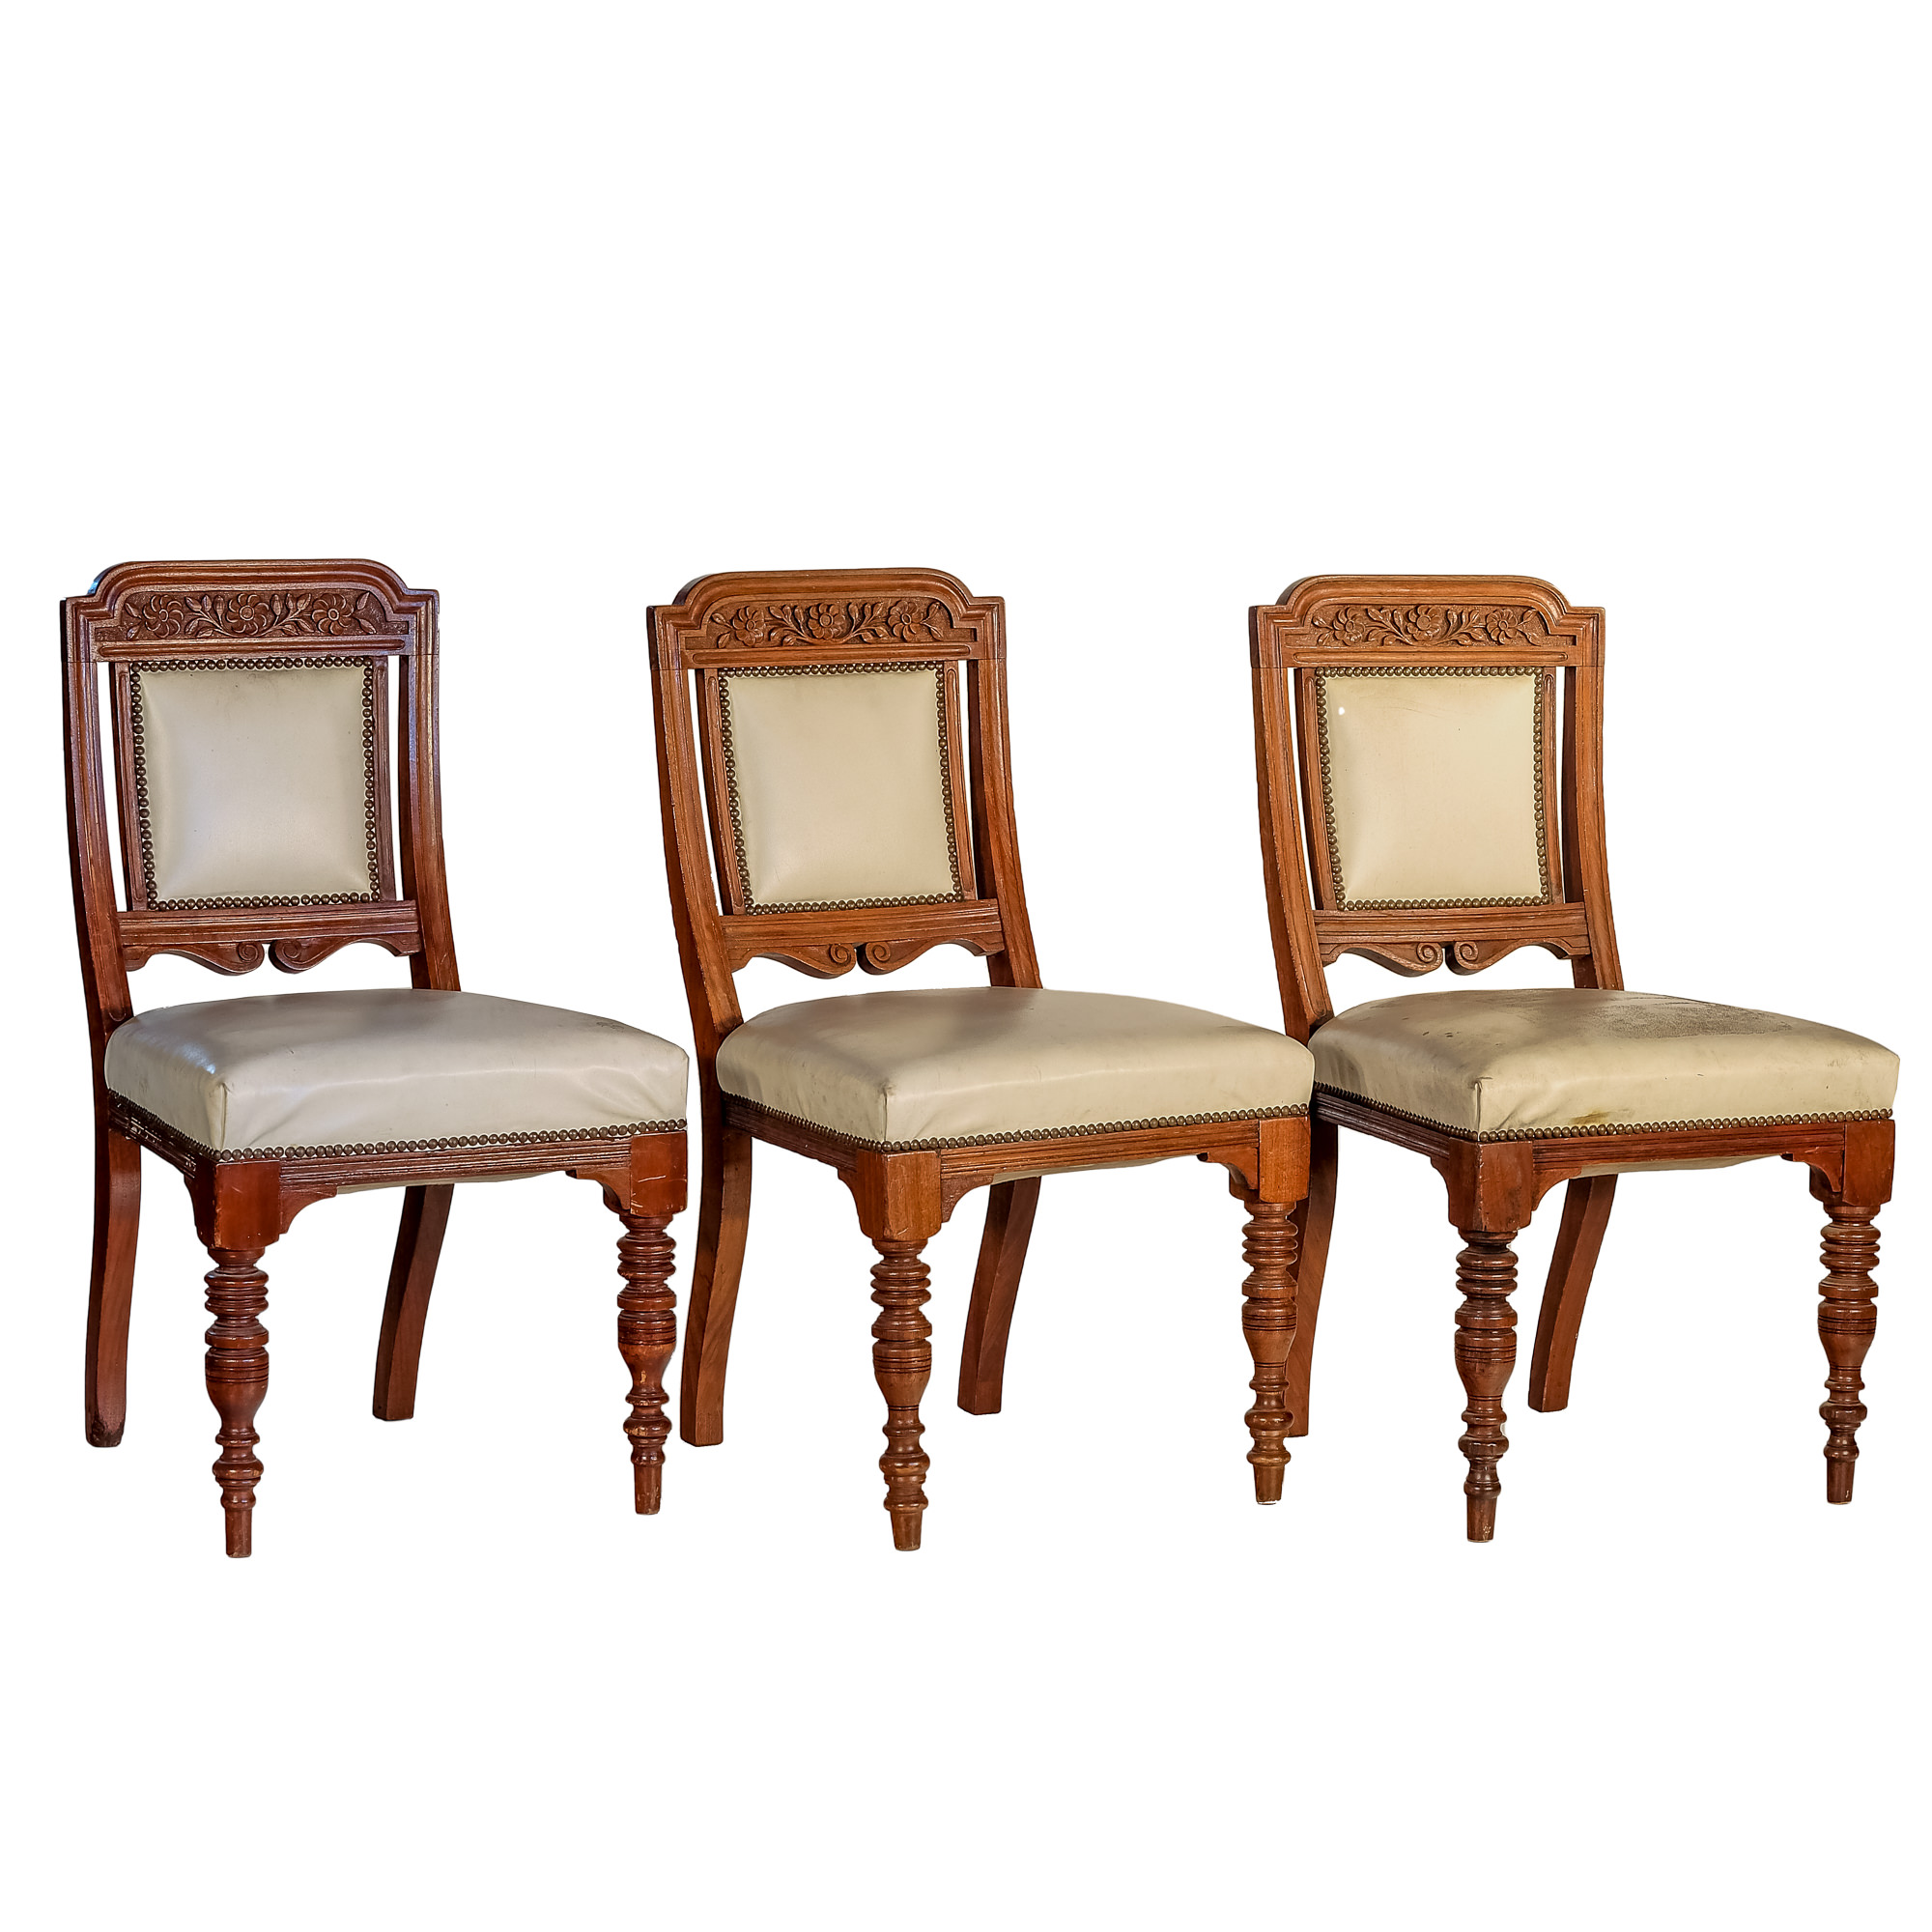 'Three Edwardian Carved Walnut Dining Chairs with Ivory Leather Upholstery Circa 1910'